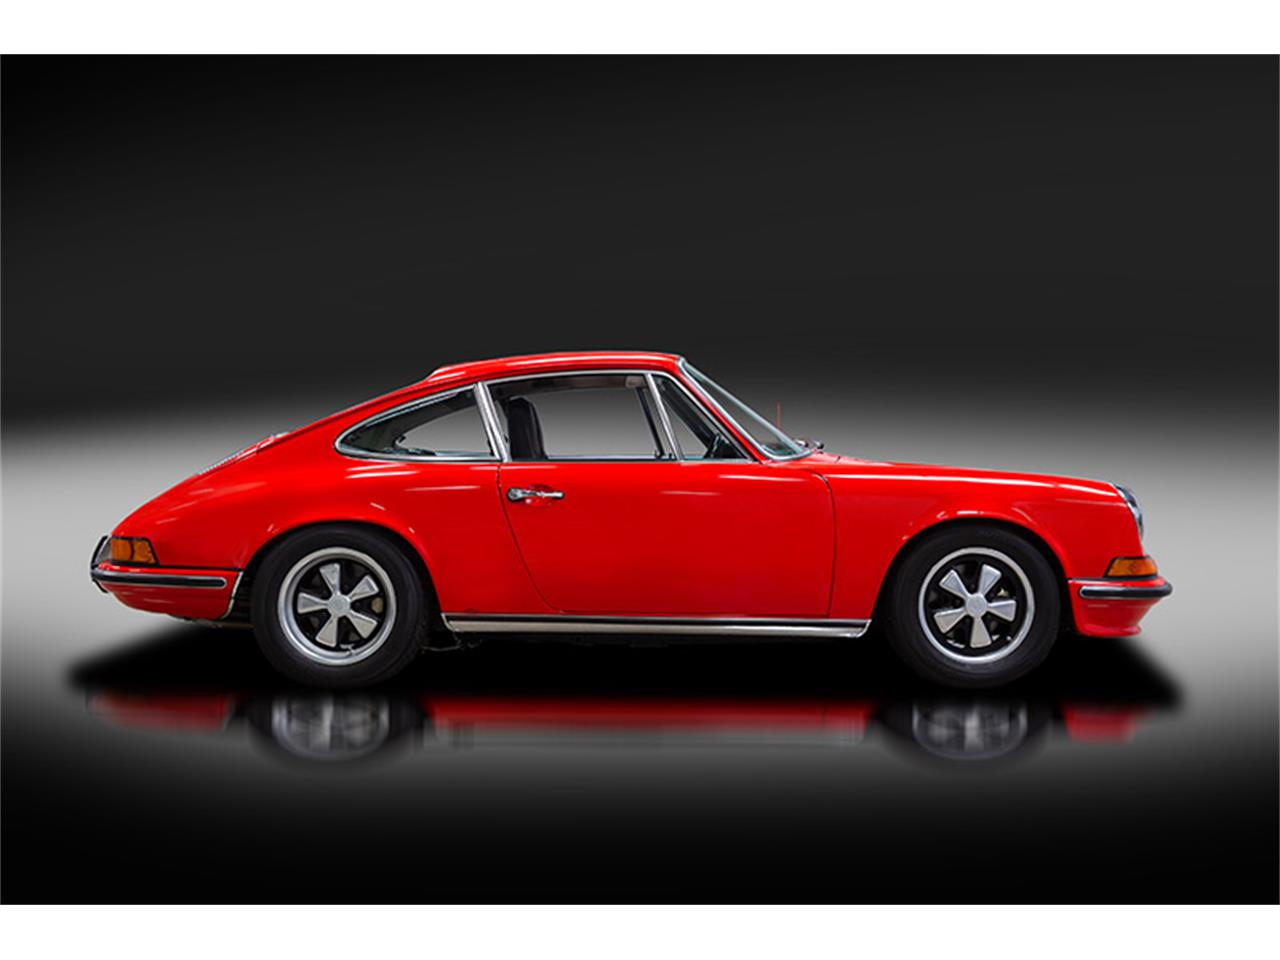 1970 Porsche 911T (CC-1247451) for sale in Seekonk, Massachusetts